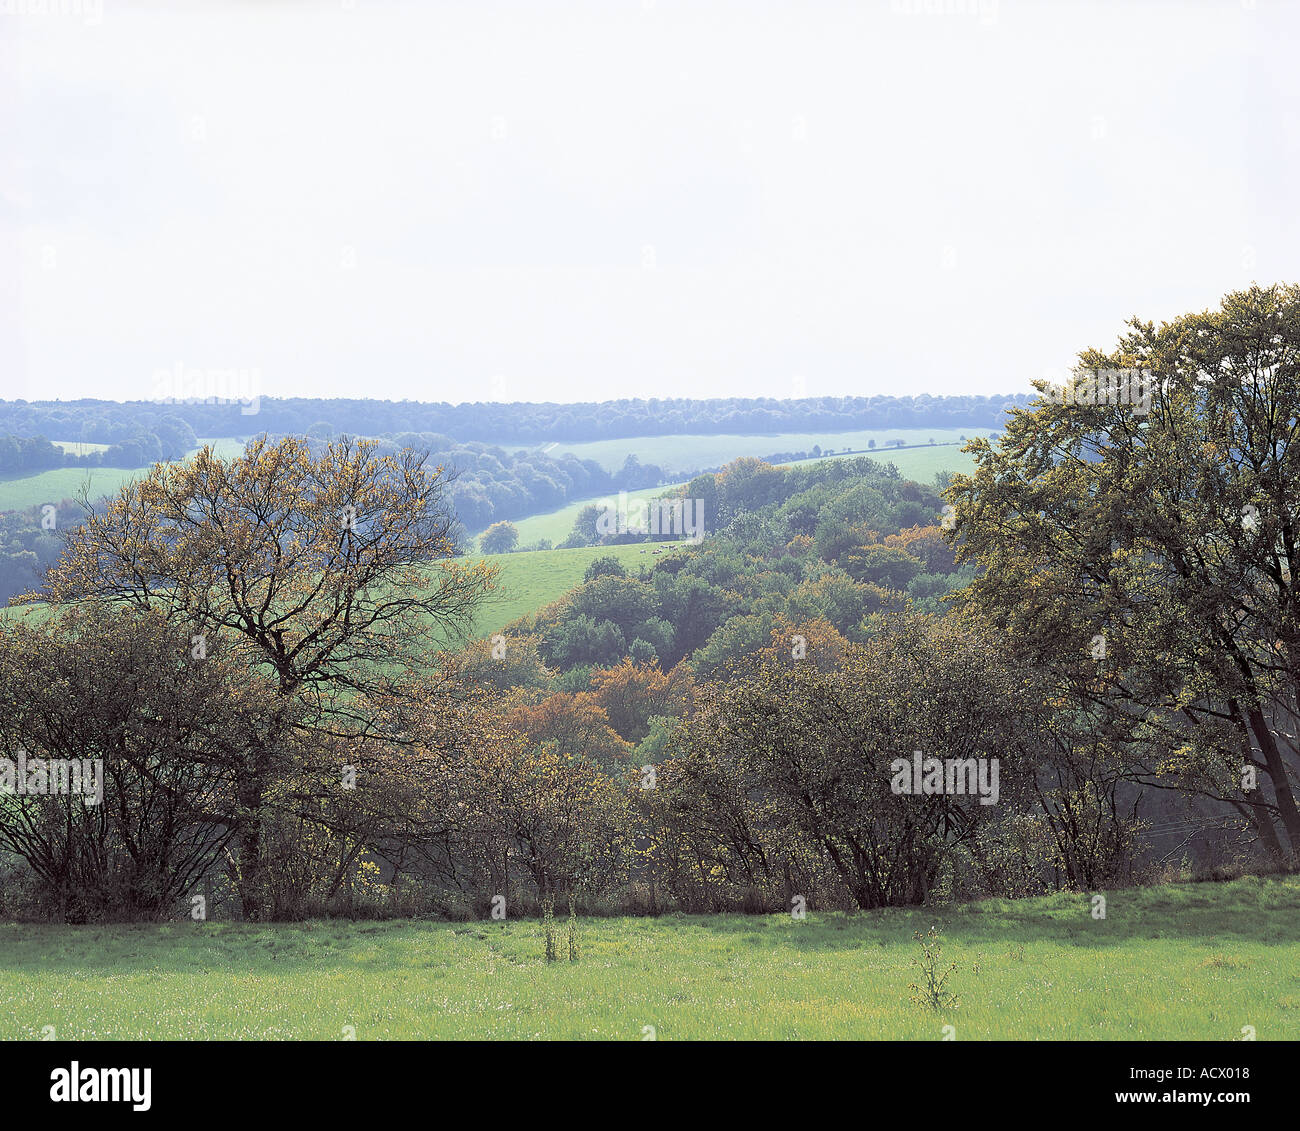 View of The Northern Chilterns from The Ridgeway - Stock Image